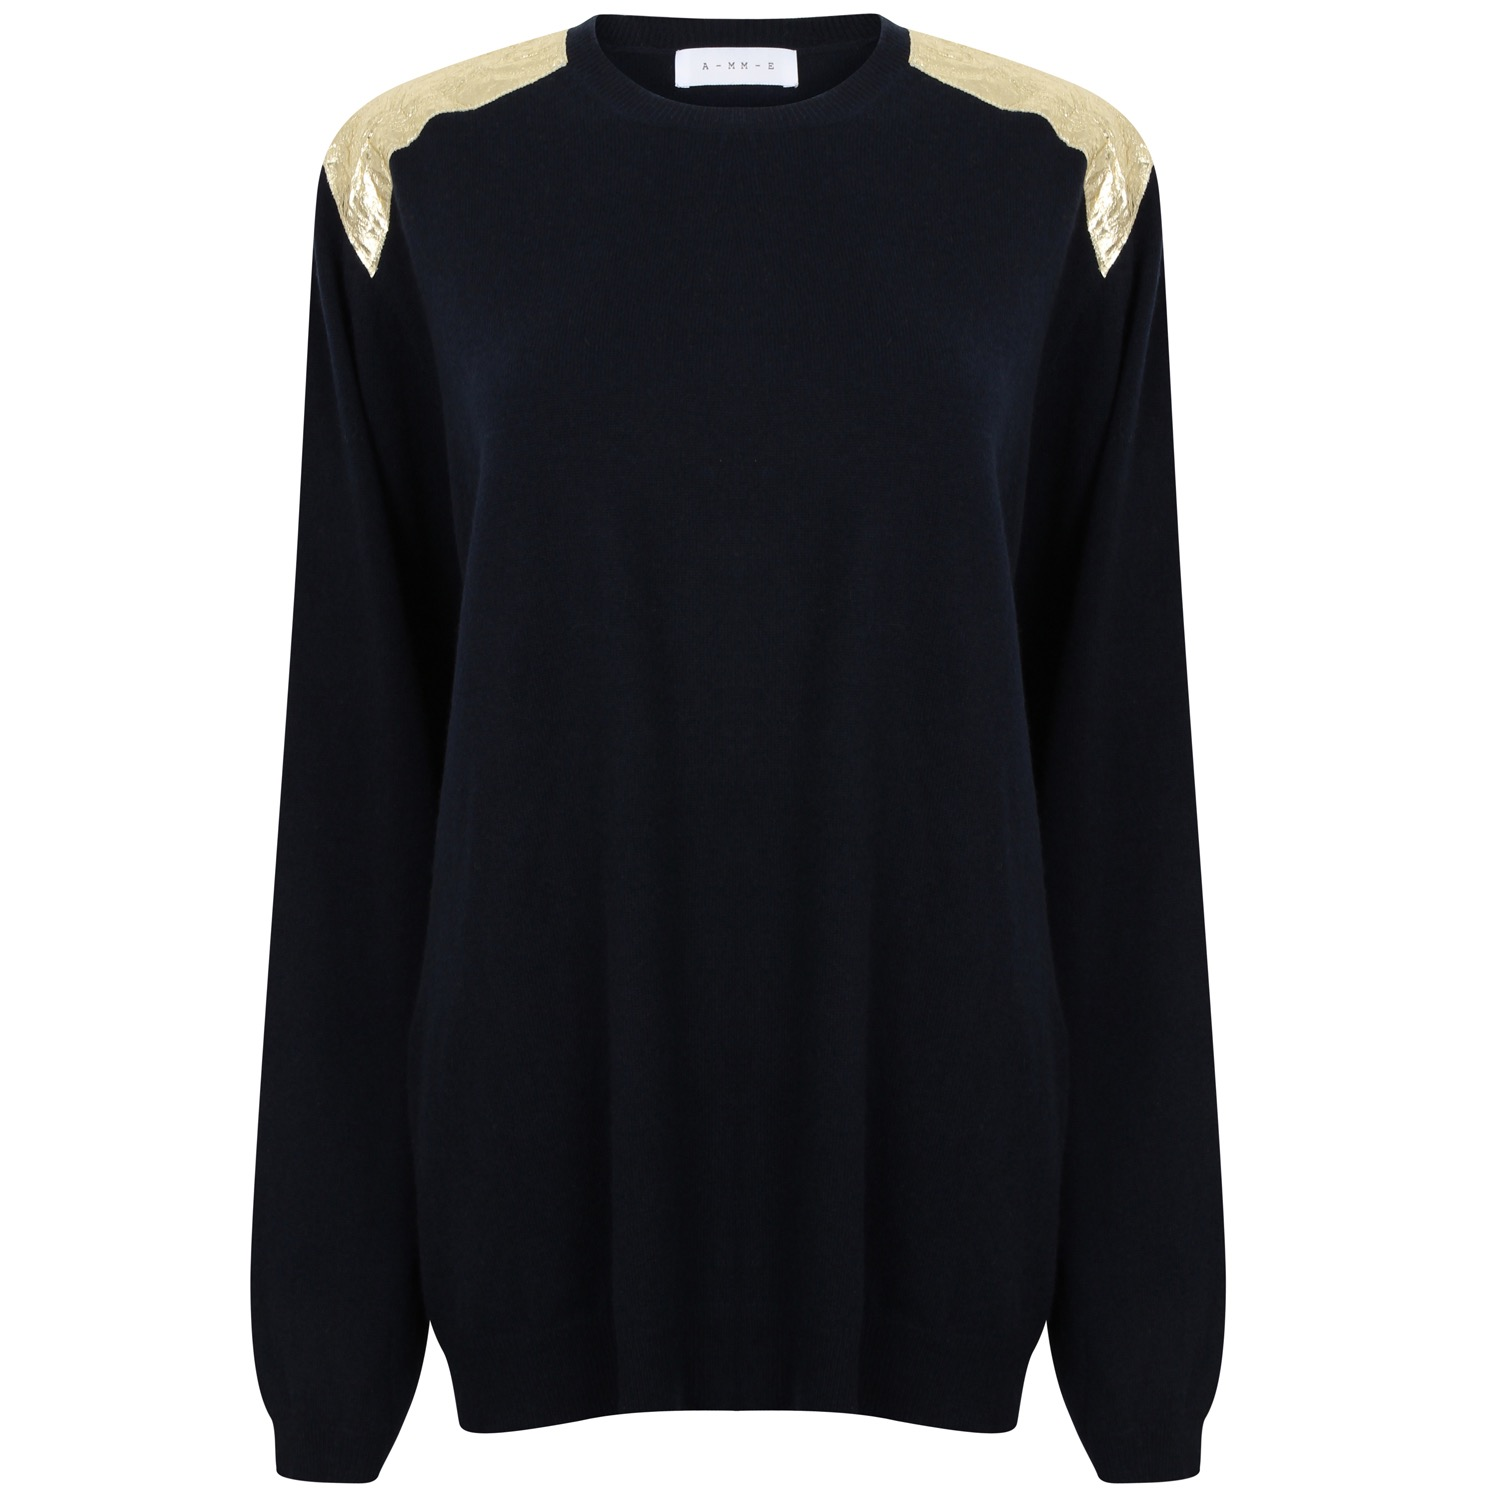 The Navy & Gold Oversize Cashmere